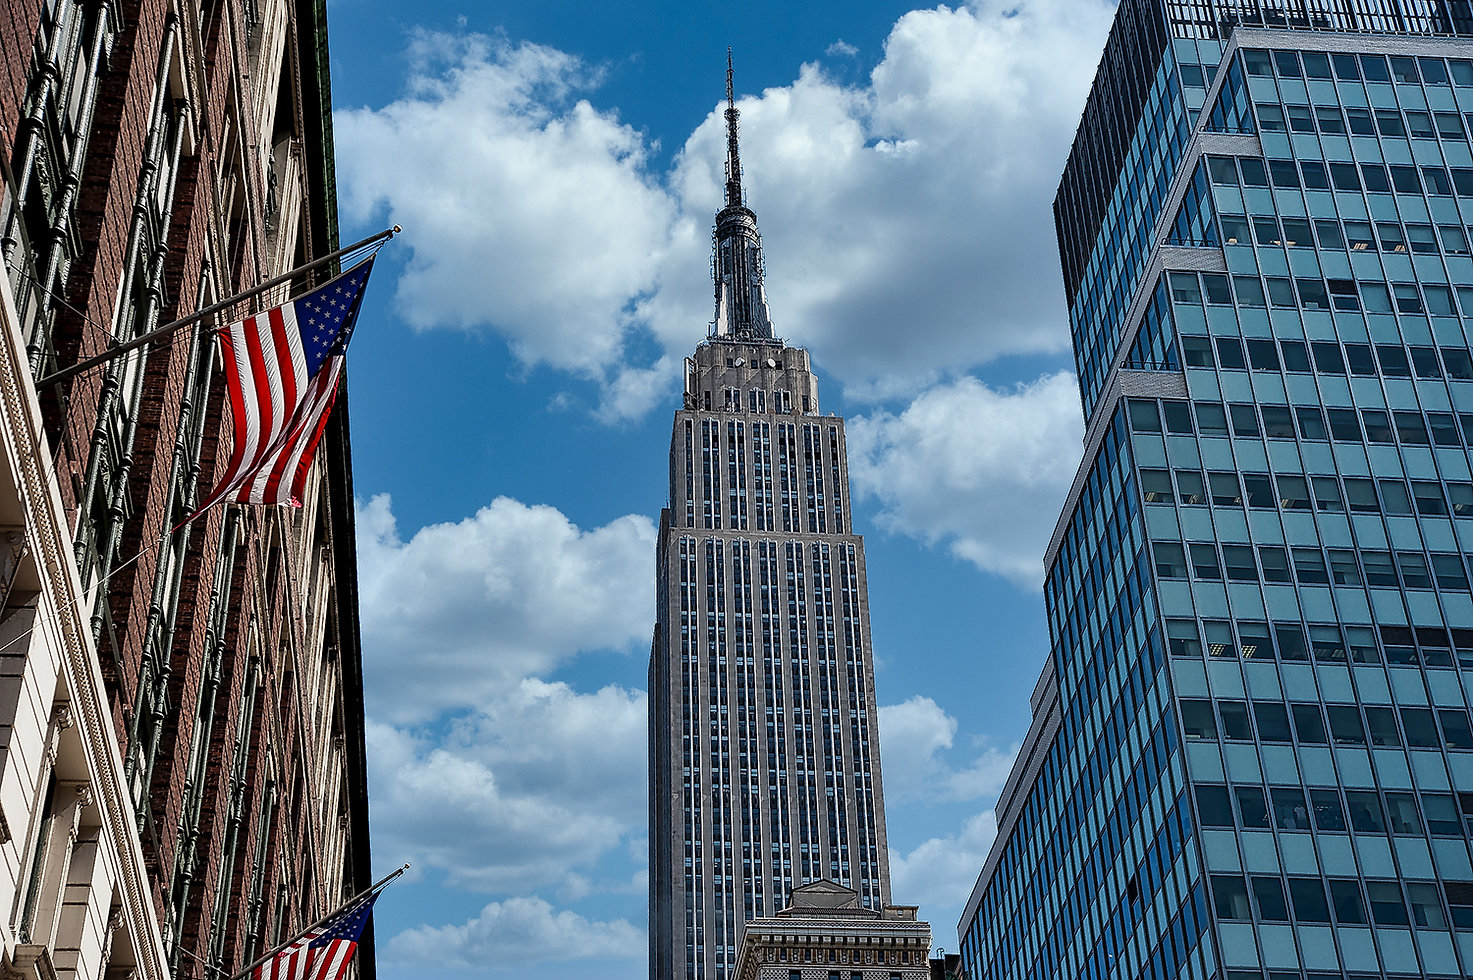 Web Empire State Building 1327.jpg